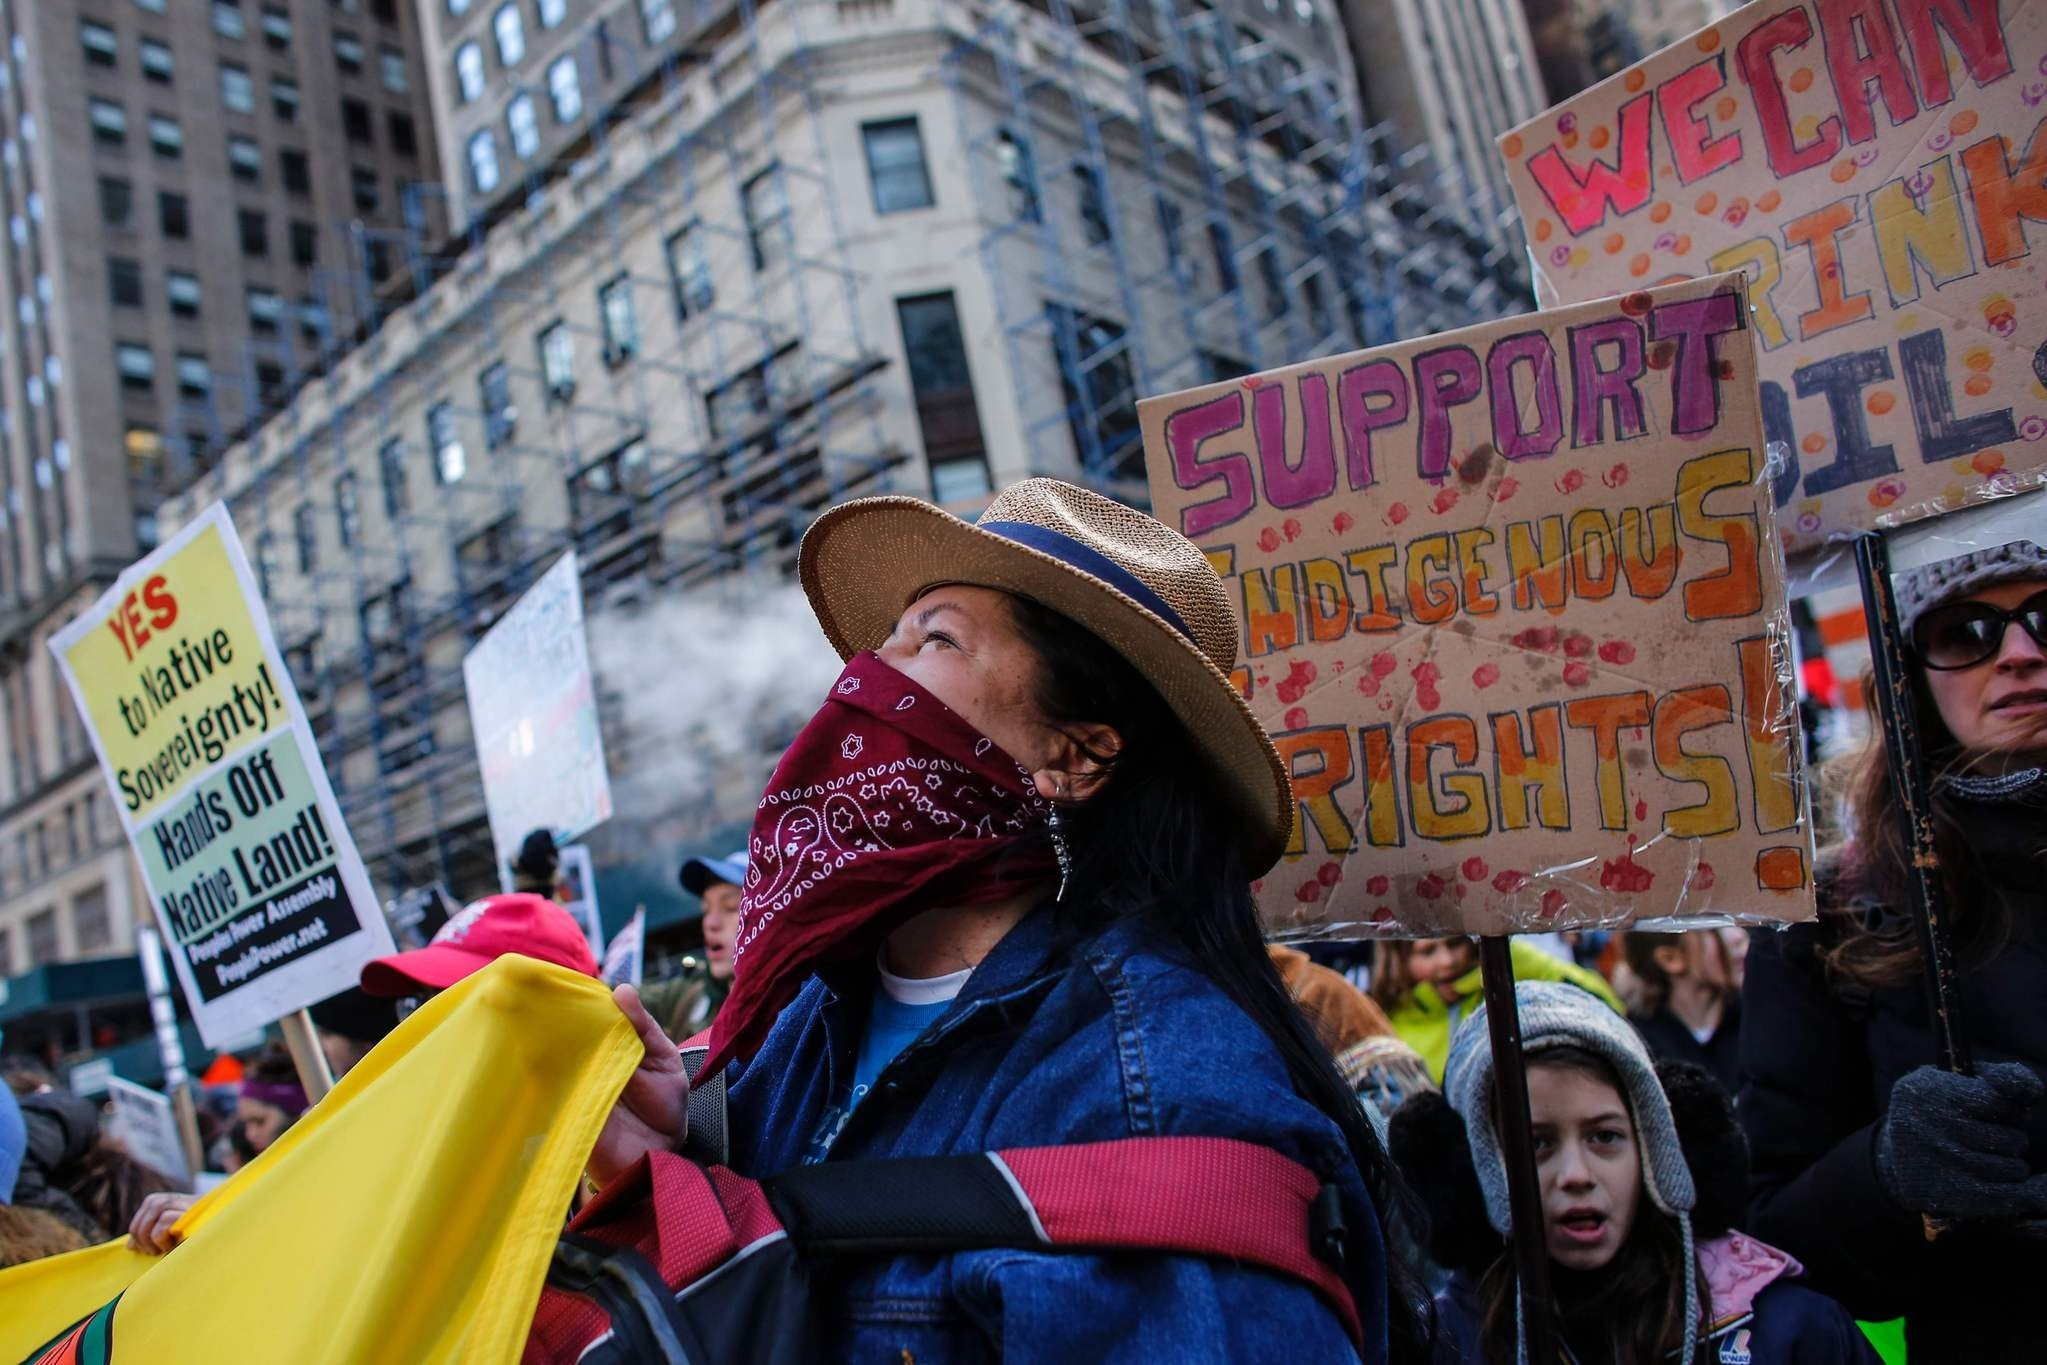 A woman shouts slogans as she takes part during a protest against the planned Dakota Access Pipeline on March 04, 2017 in New York. (AFP Photo)